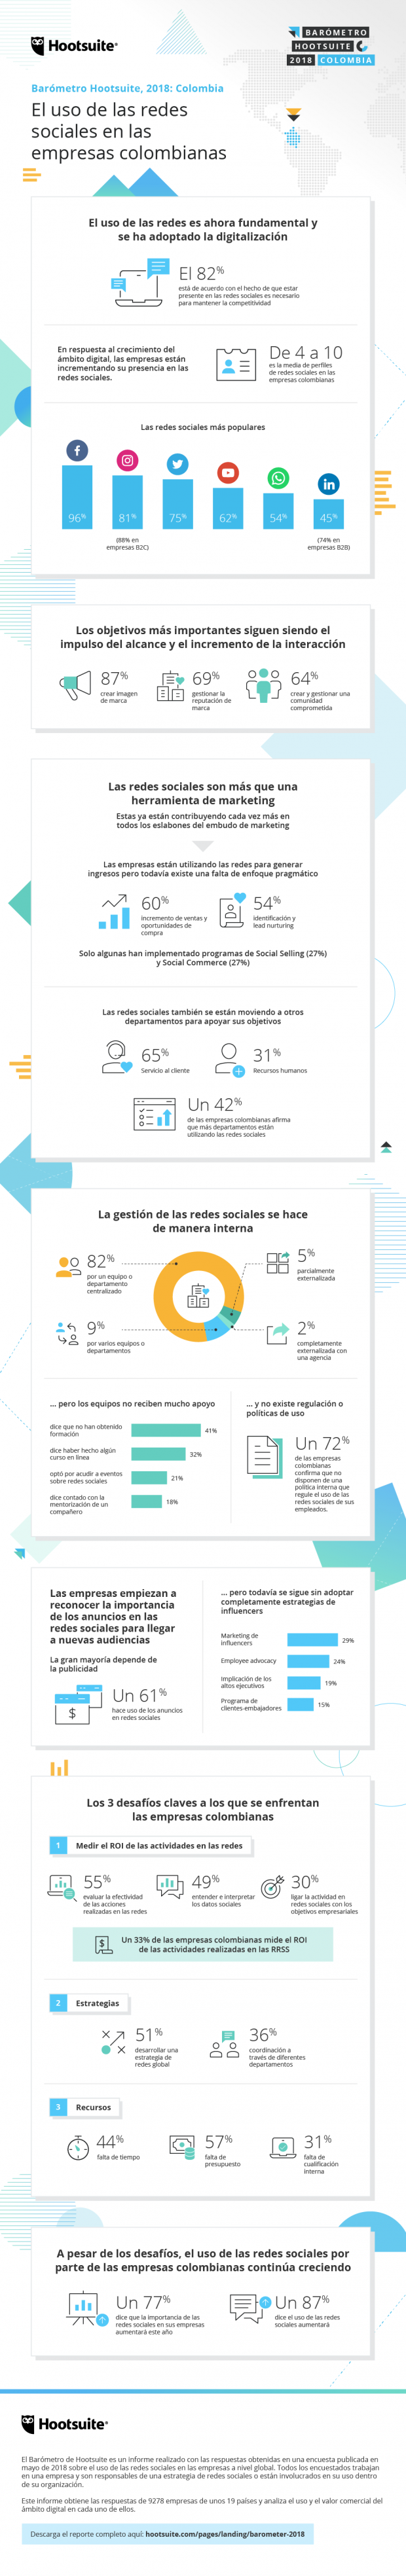 Marketing Social - Infografía Colombia